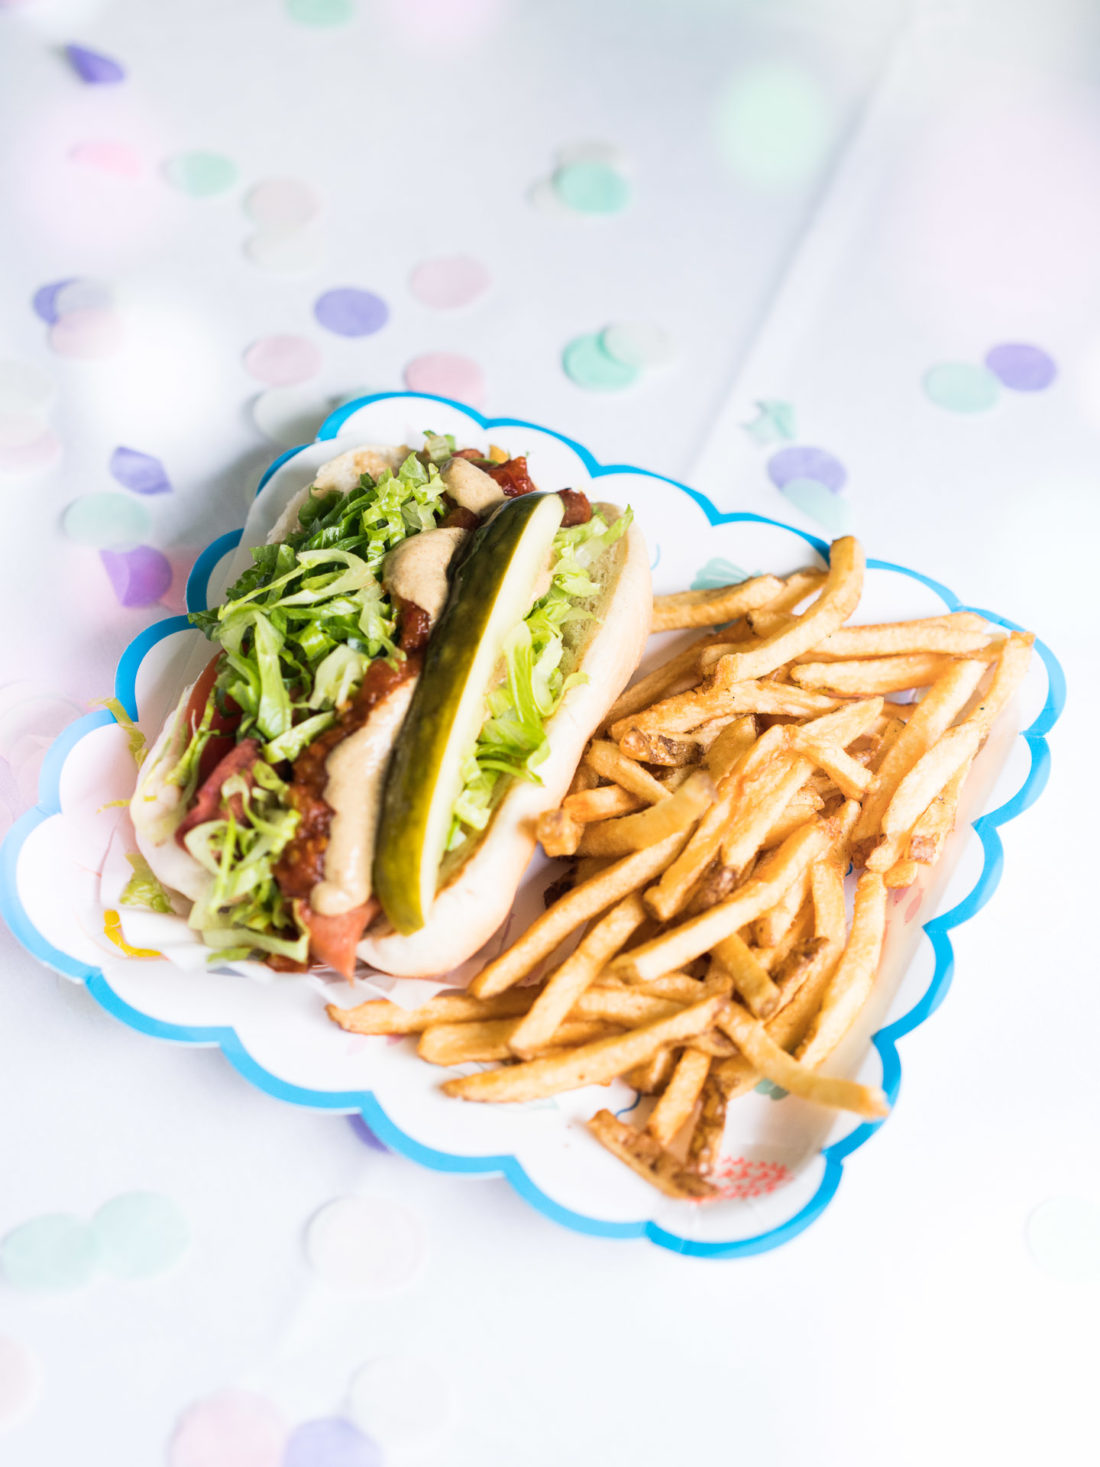 guests enjoy hot dogs and fries at Marlowe Martino's third birthday party